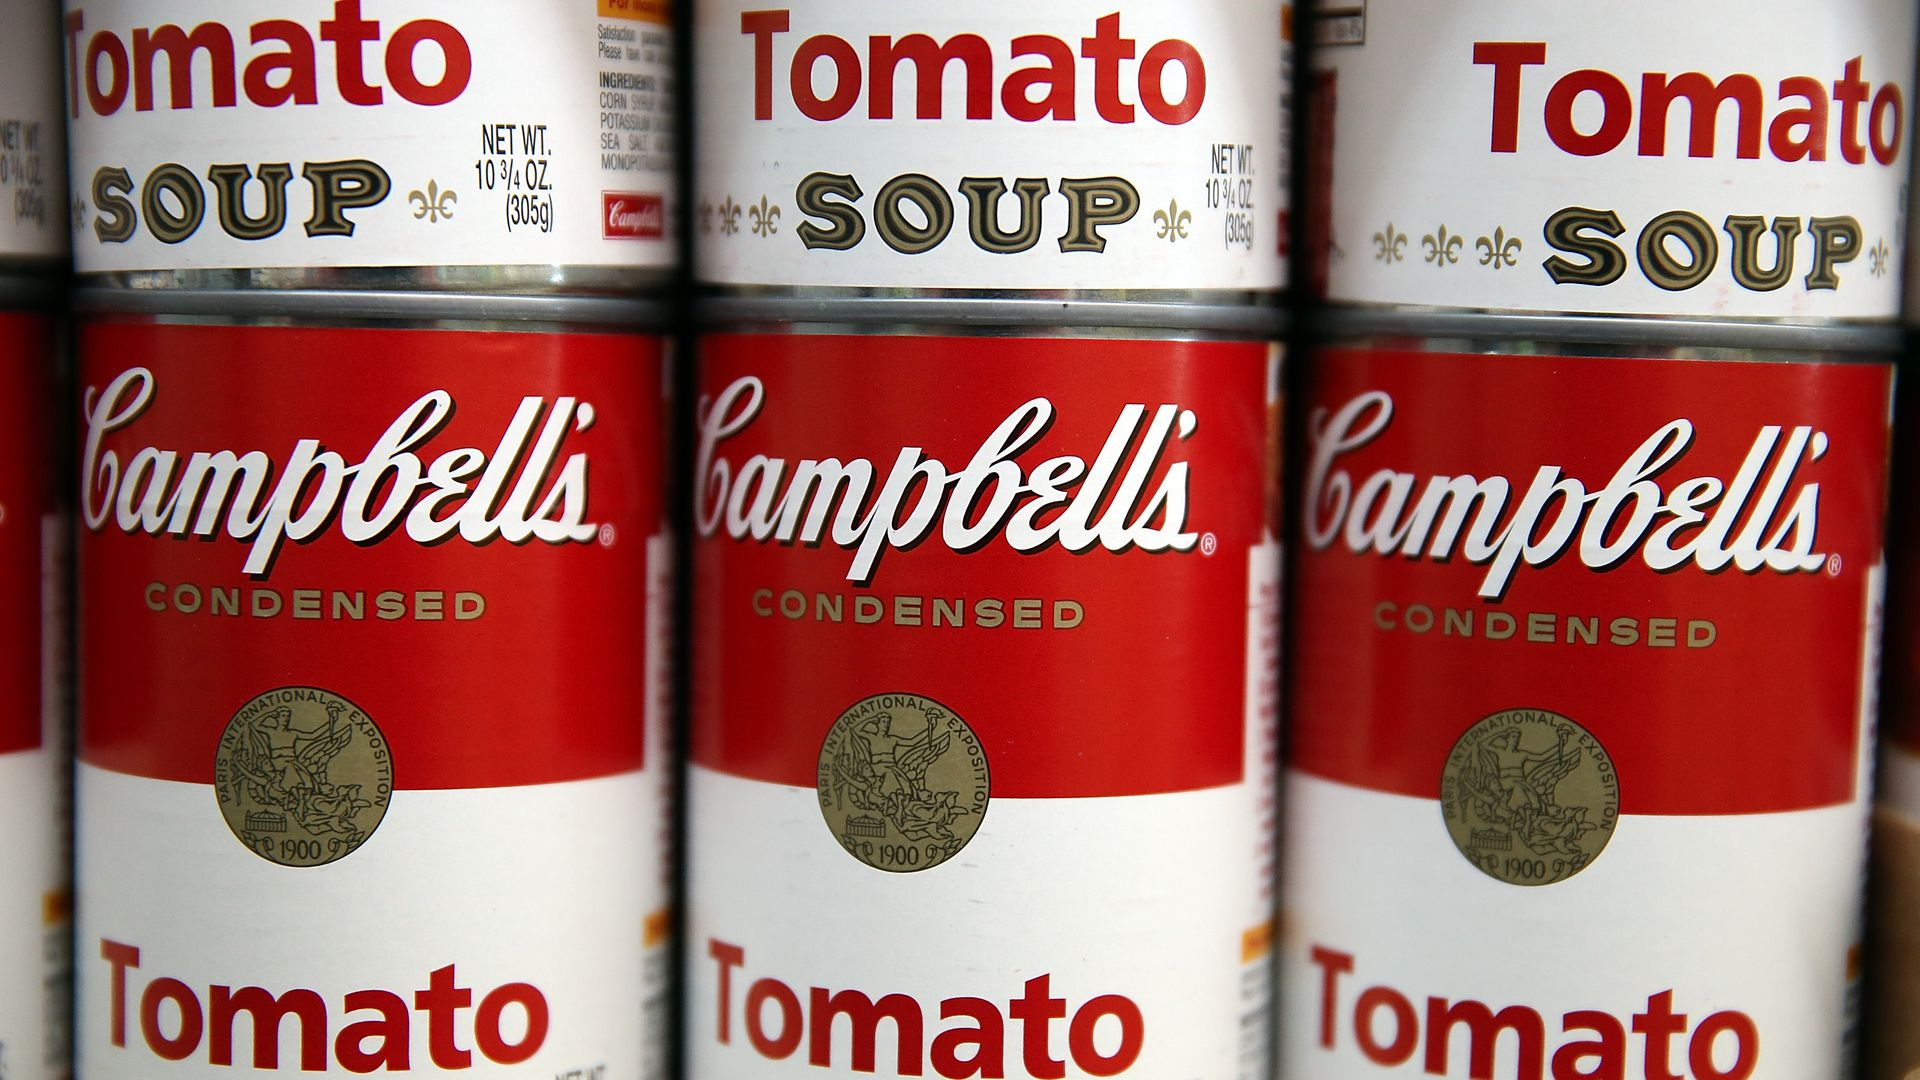 Cans of Campbell's Soup.